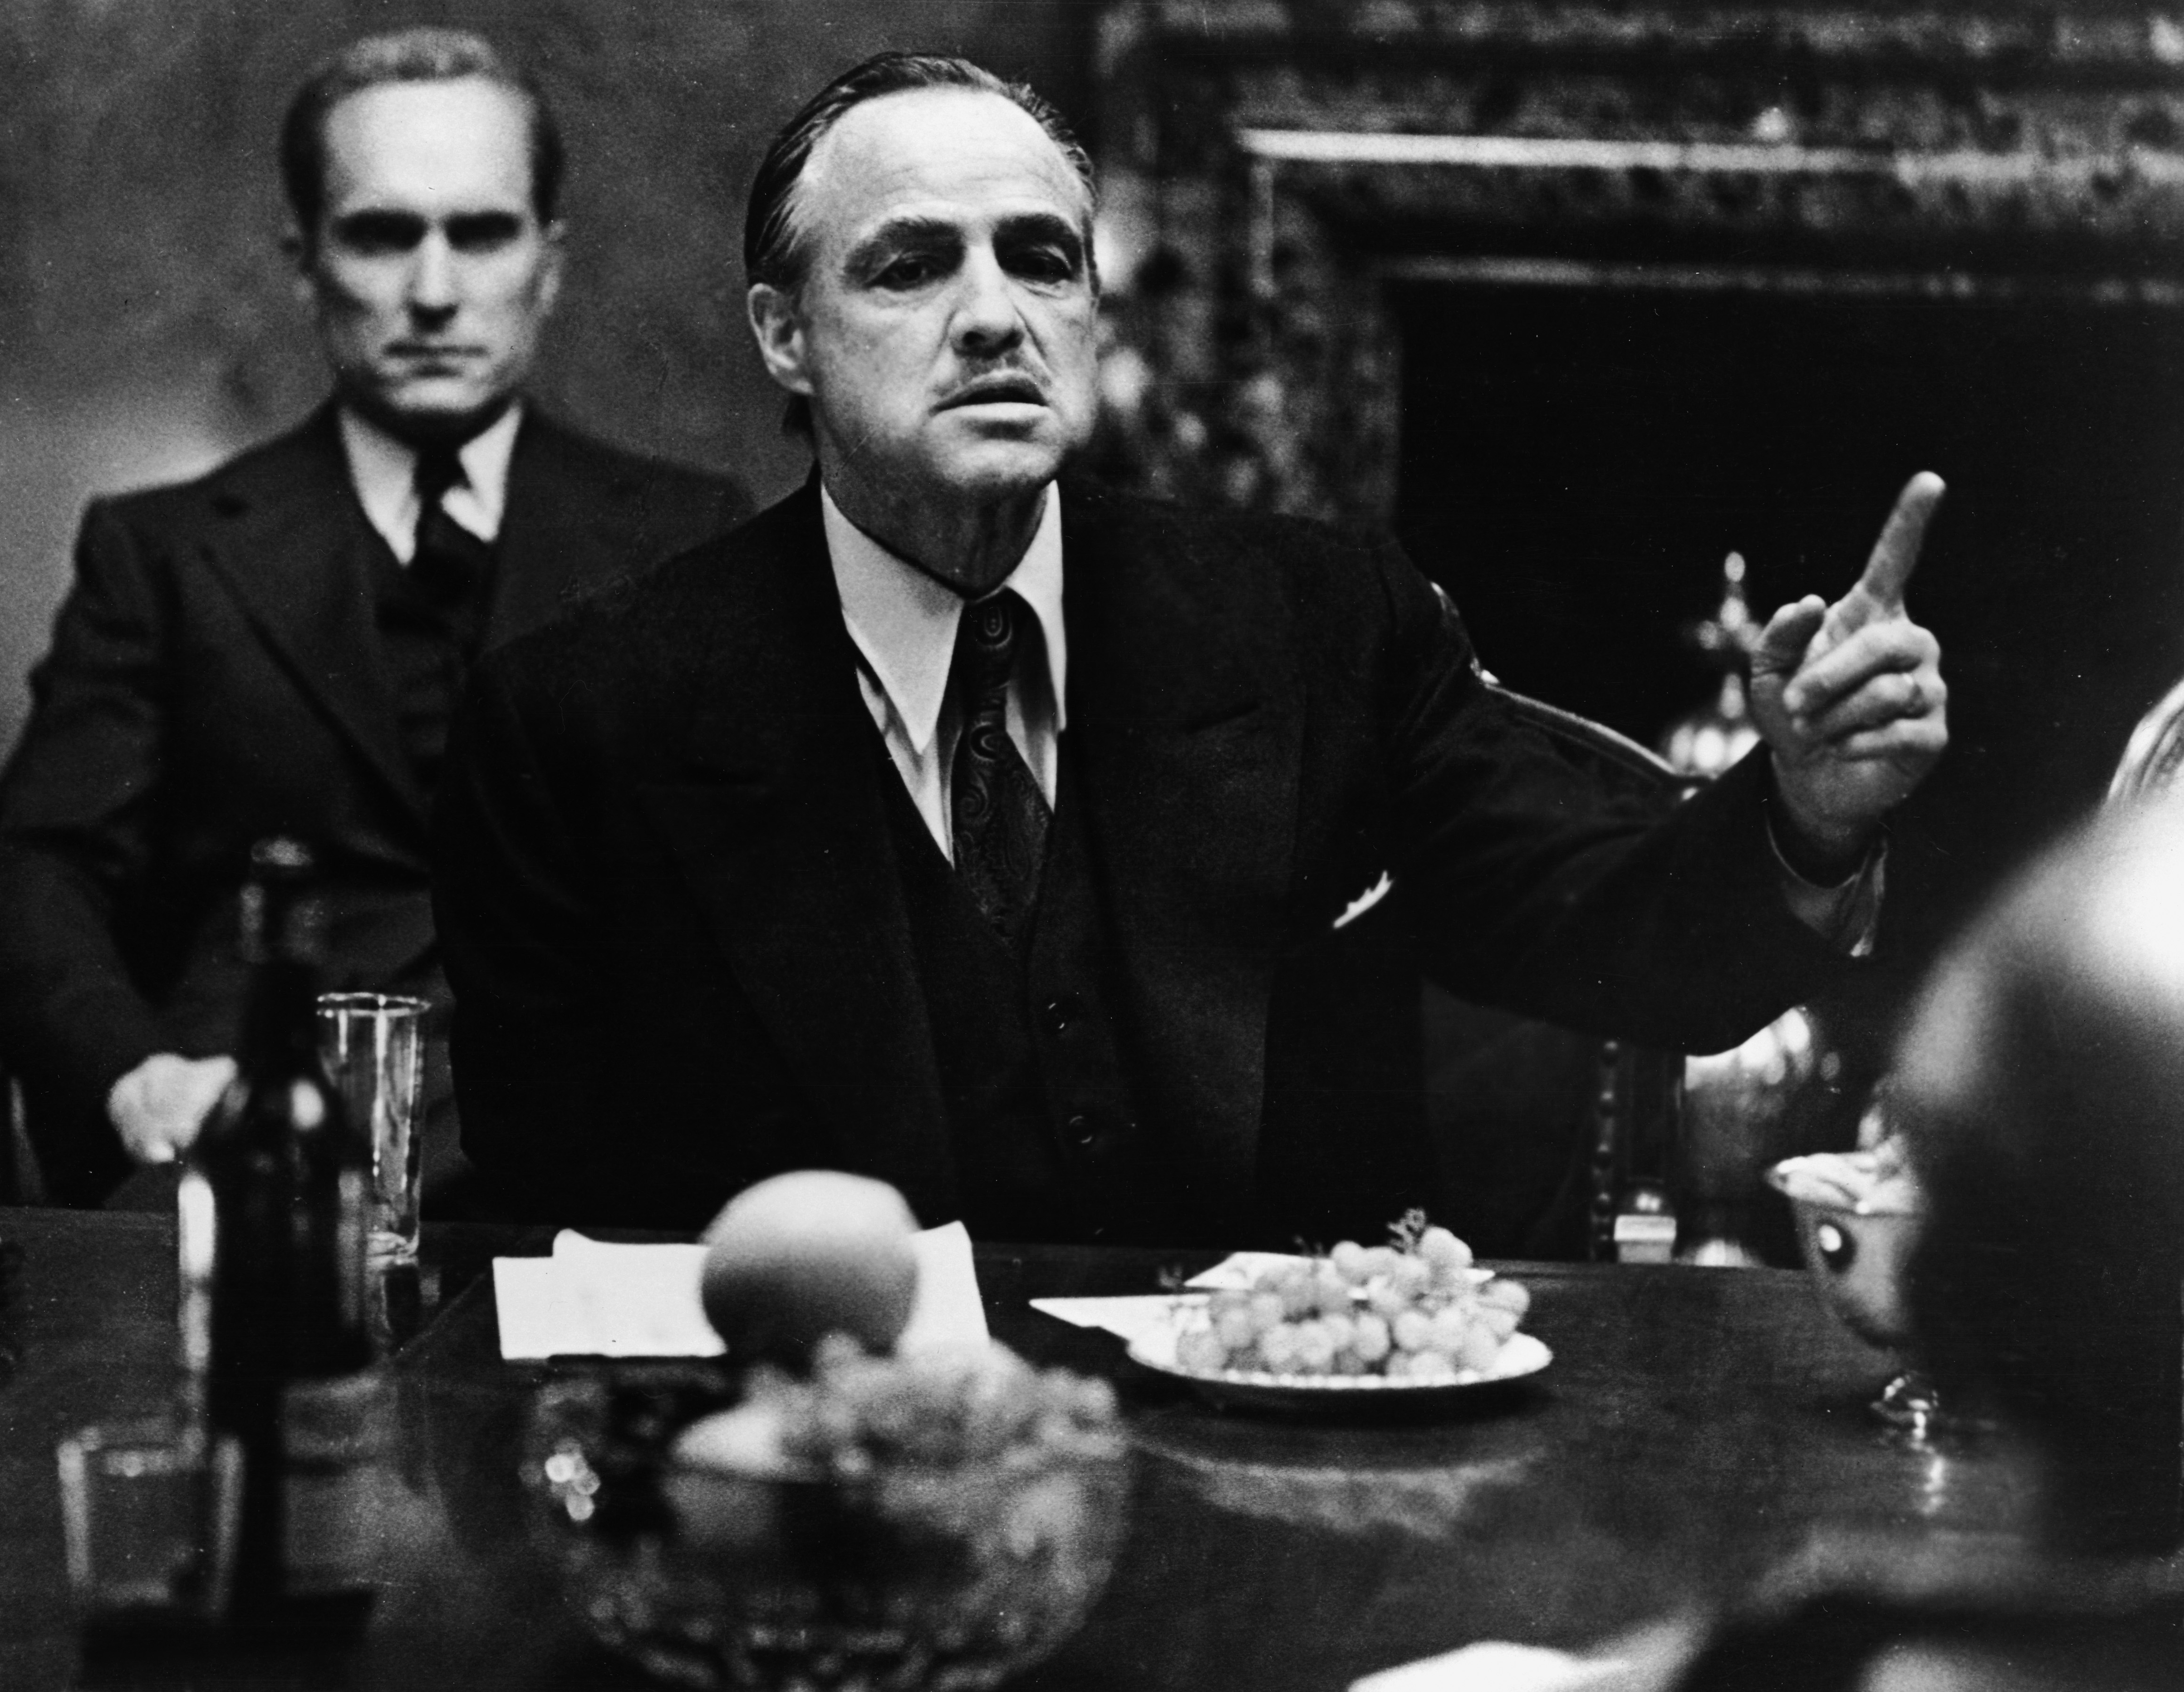 American actor Marlon Brando gestures at a table while American actor Robert Duvall sits behind him in a still from the film,